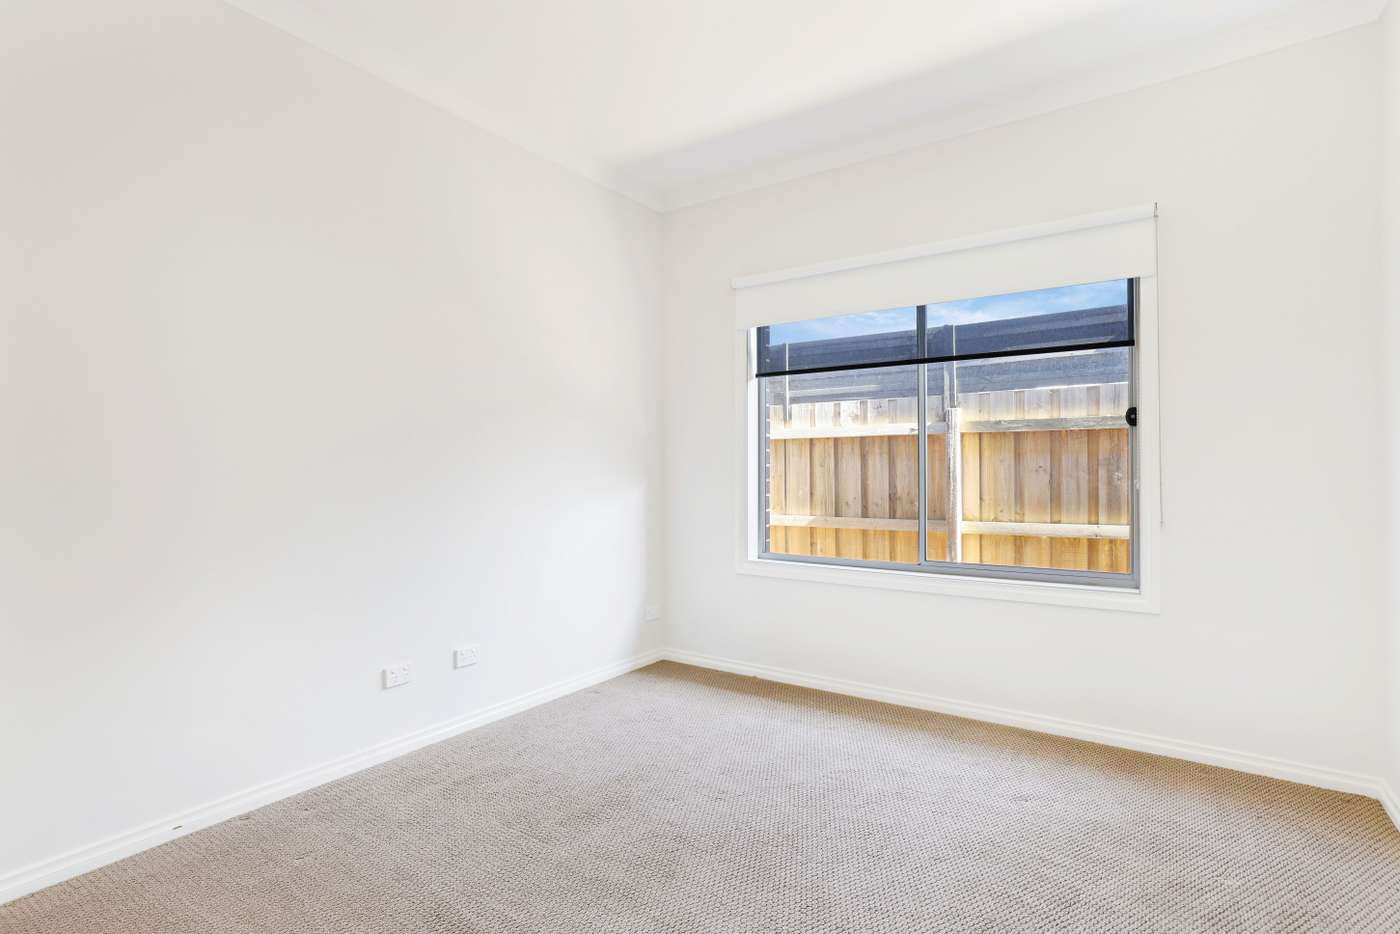 Sixth view of Homely unit listing, 3/85 Hubert Avenue, Glenroy VIC 3046